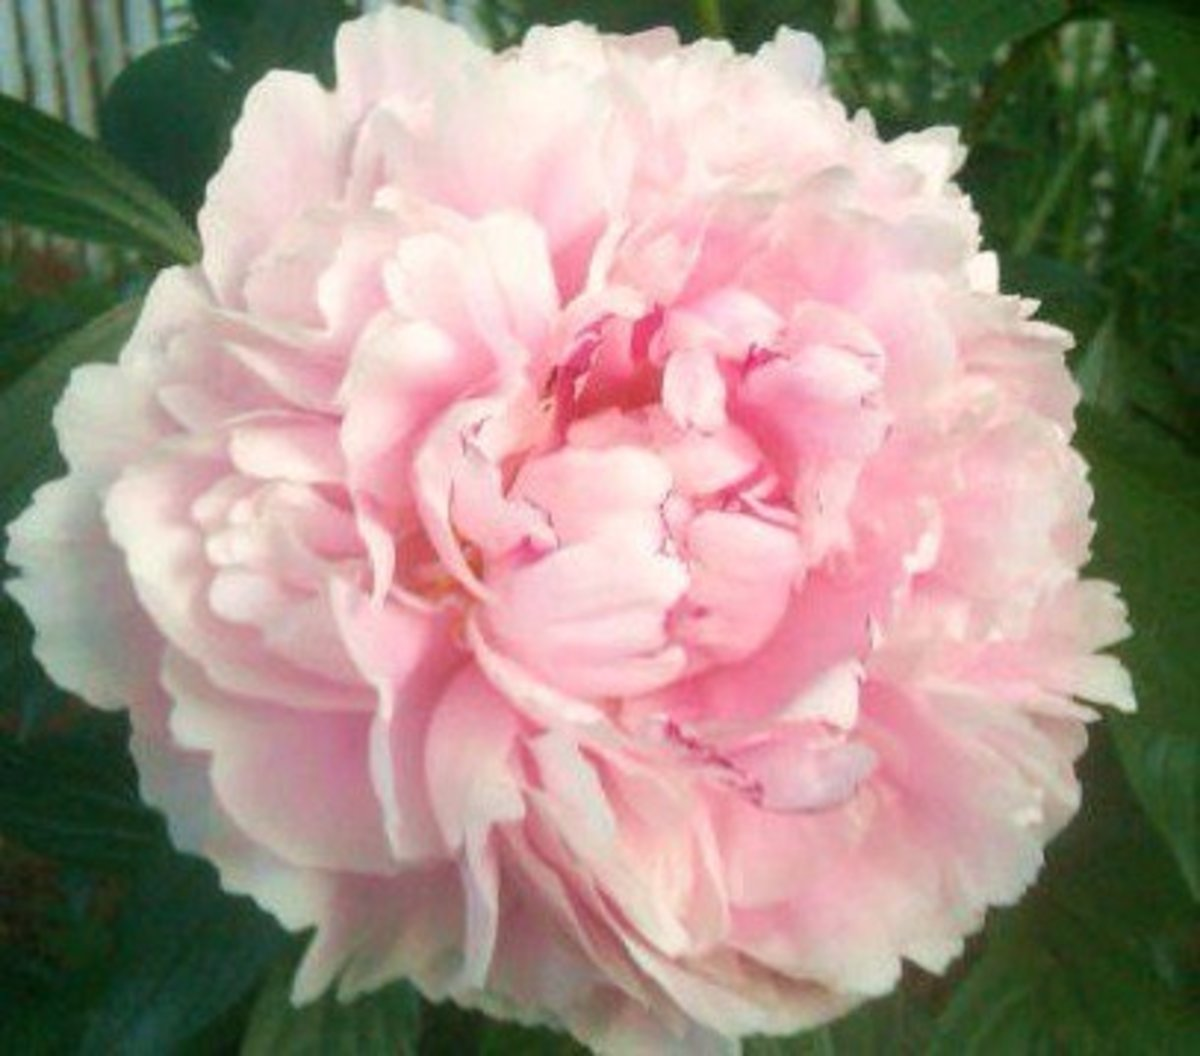 The first peony to open at our former home in Zone 7b. Its bud is shown below.